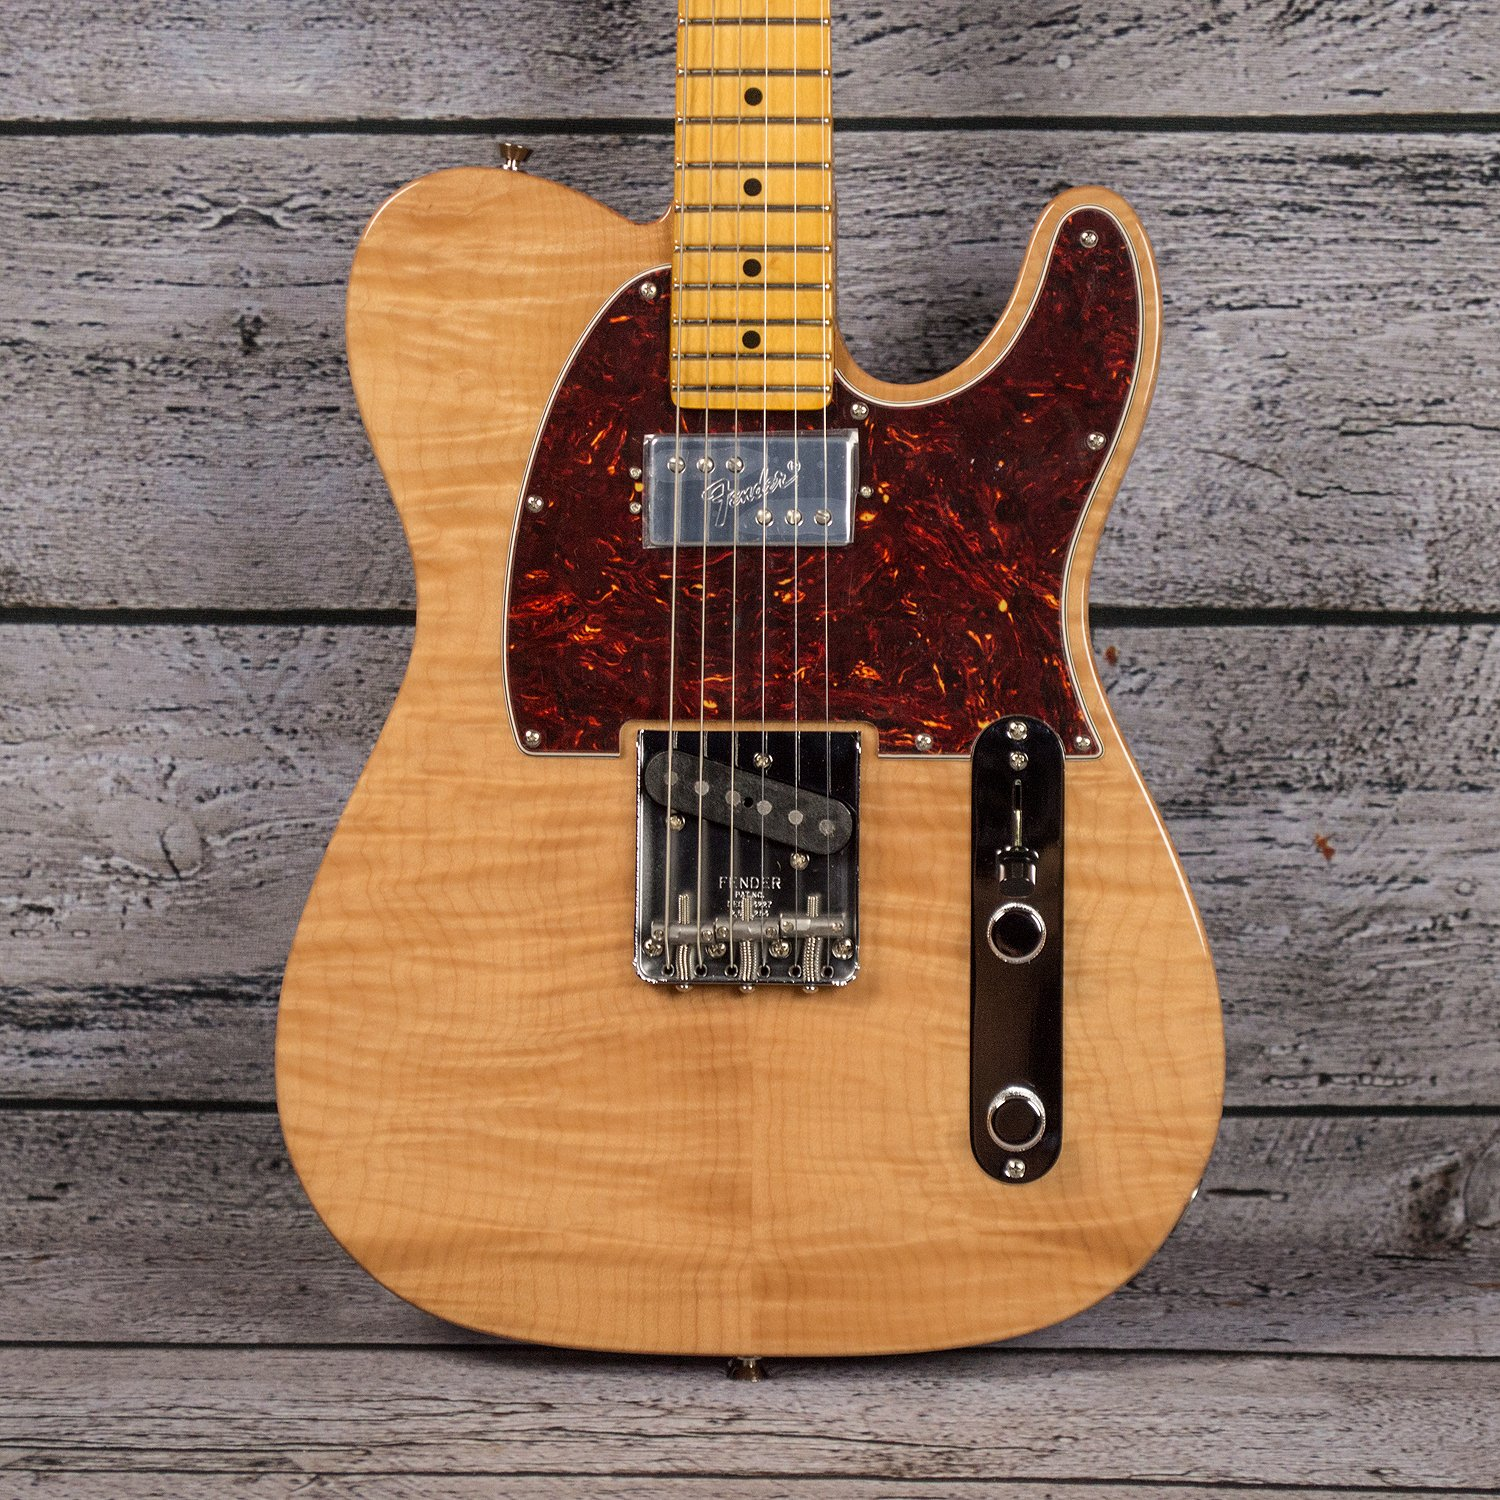 Fender Rarities Chambered Telecaster Flame Maple Top - Natural